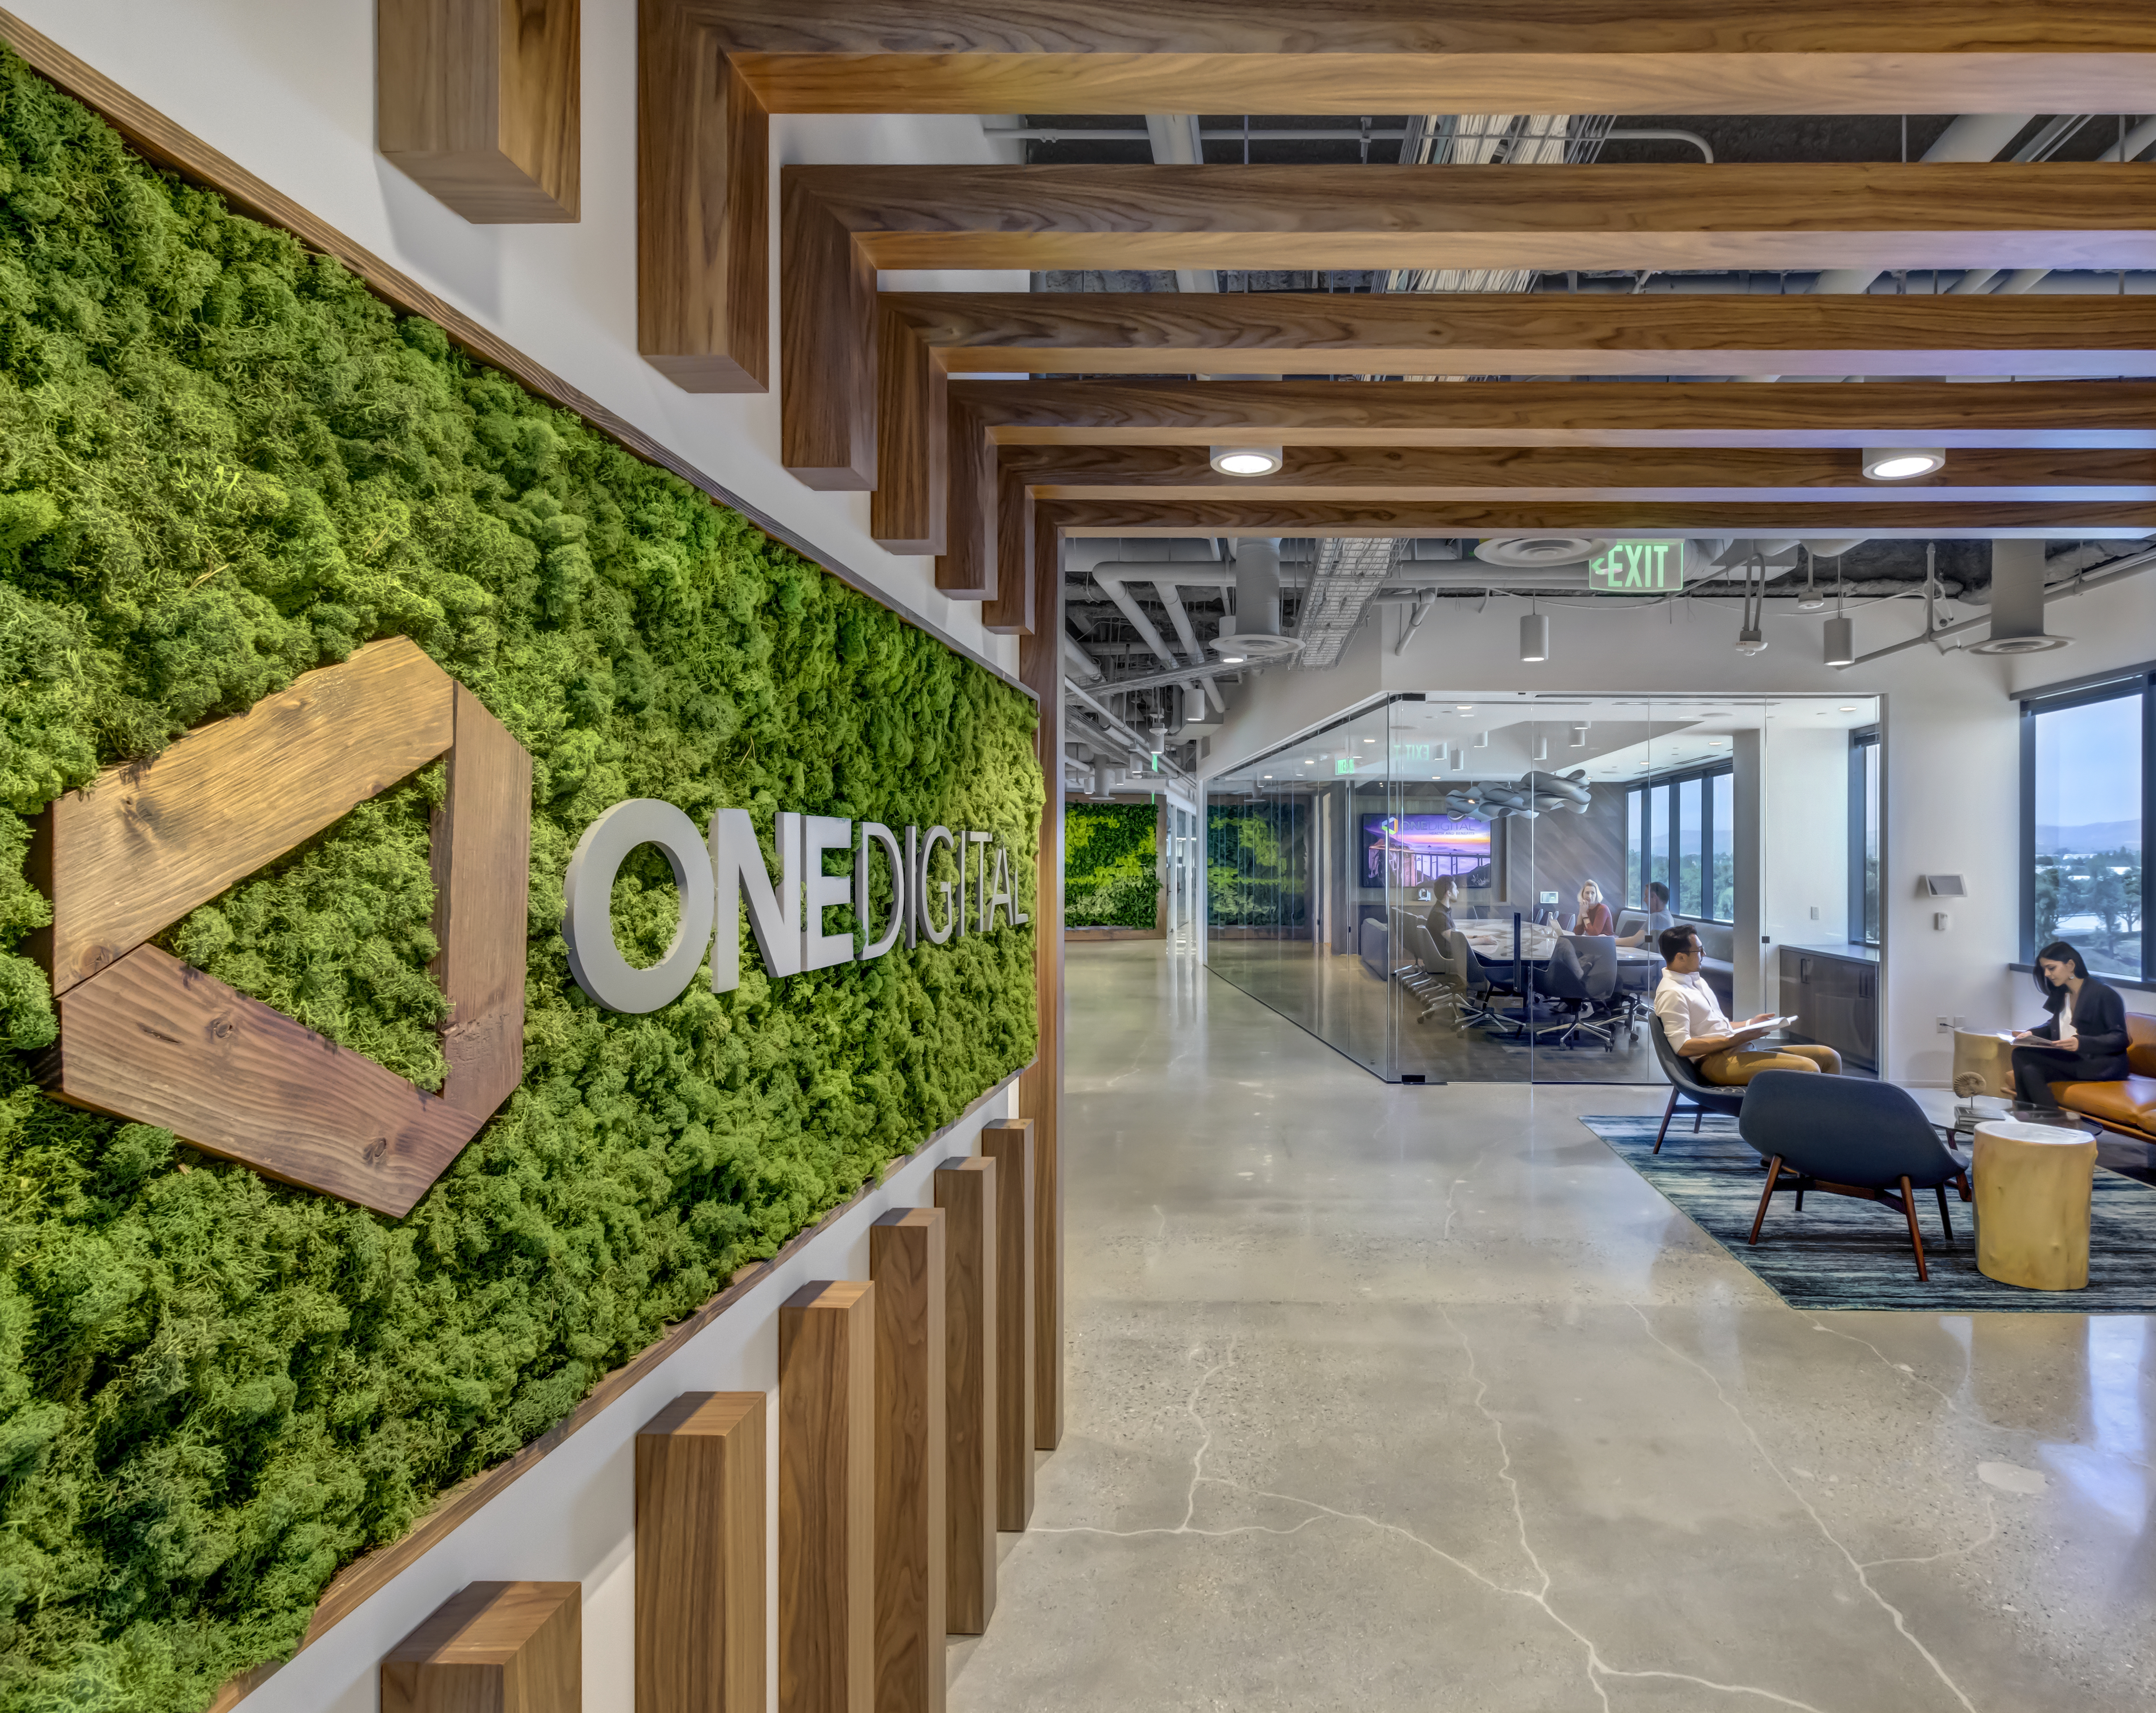 H. Hendy Gives One Digital A Space Designed To Foster Wellness And Collaboration